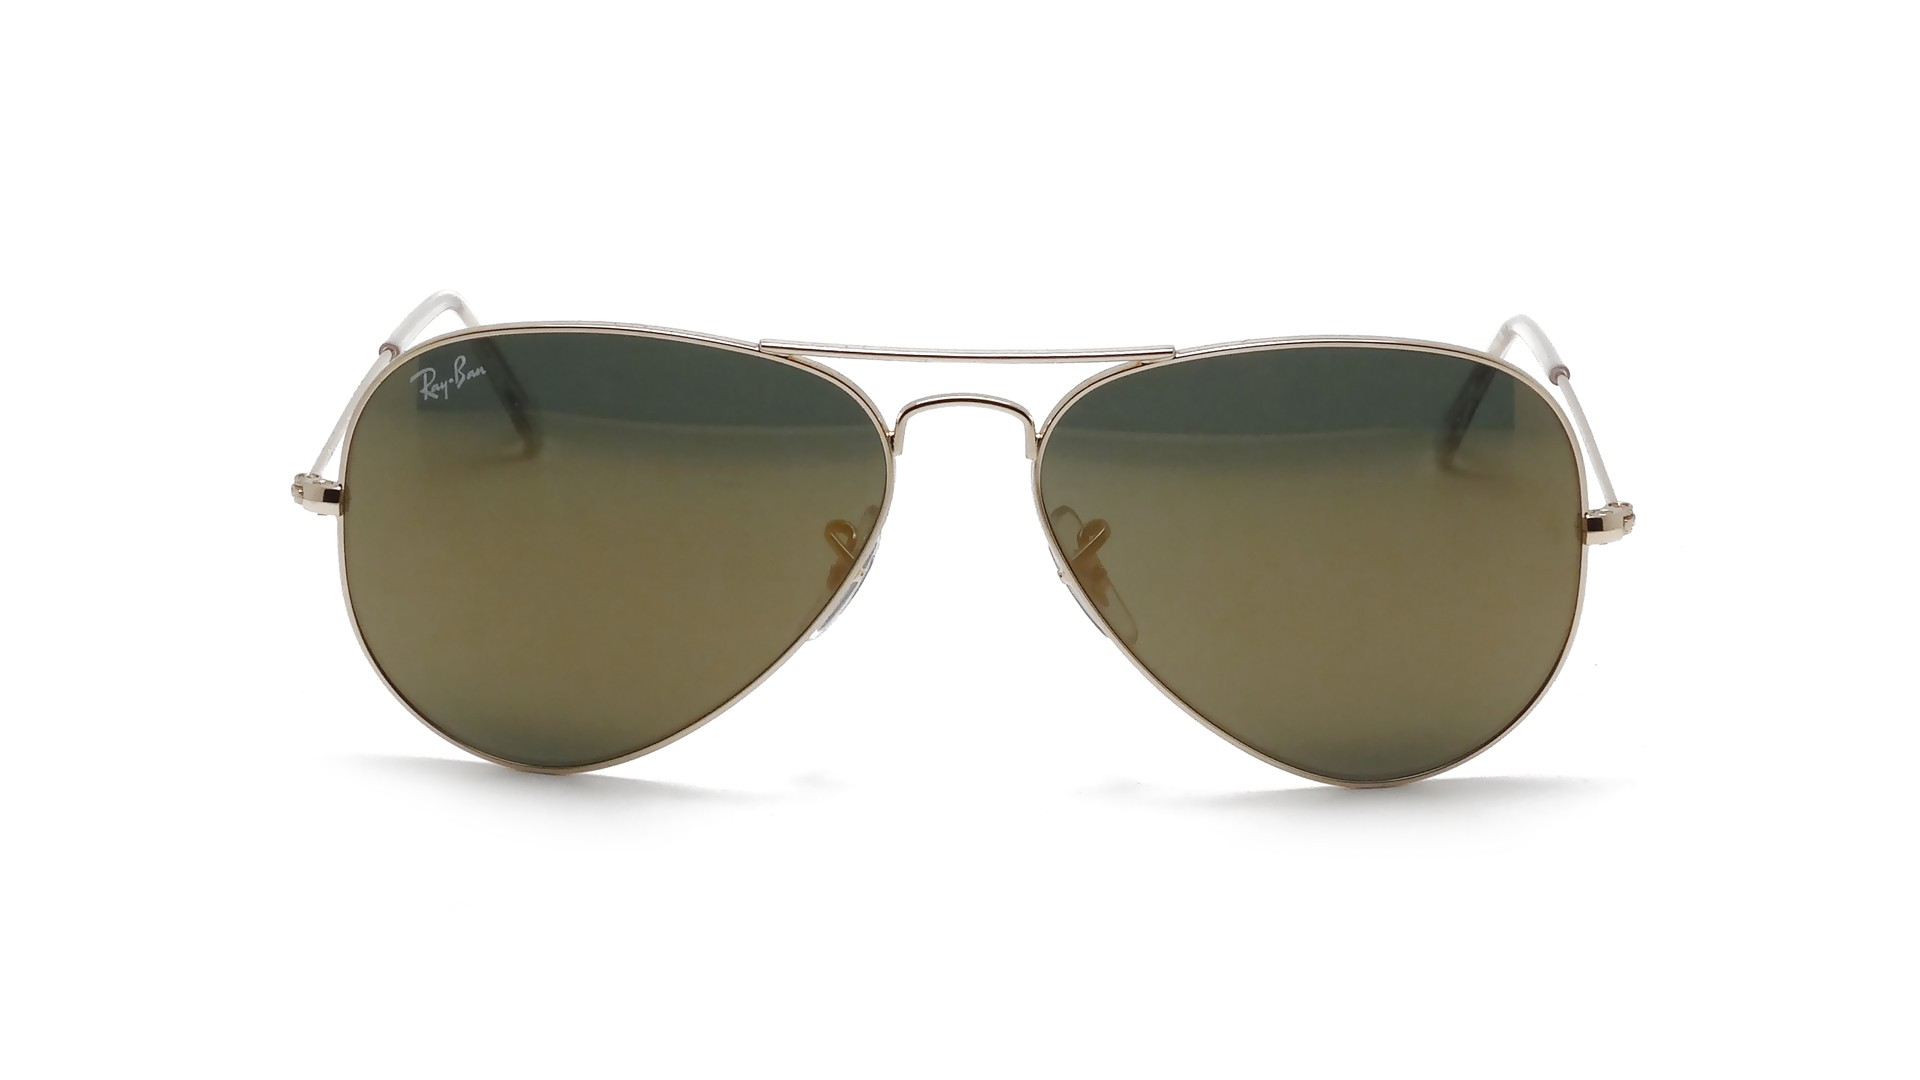 Ray Ban RB3025 W3276 58 Large Aviator ijqHPQ